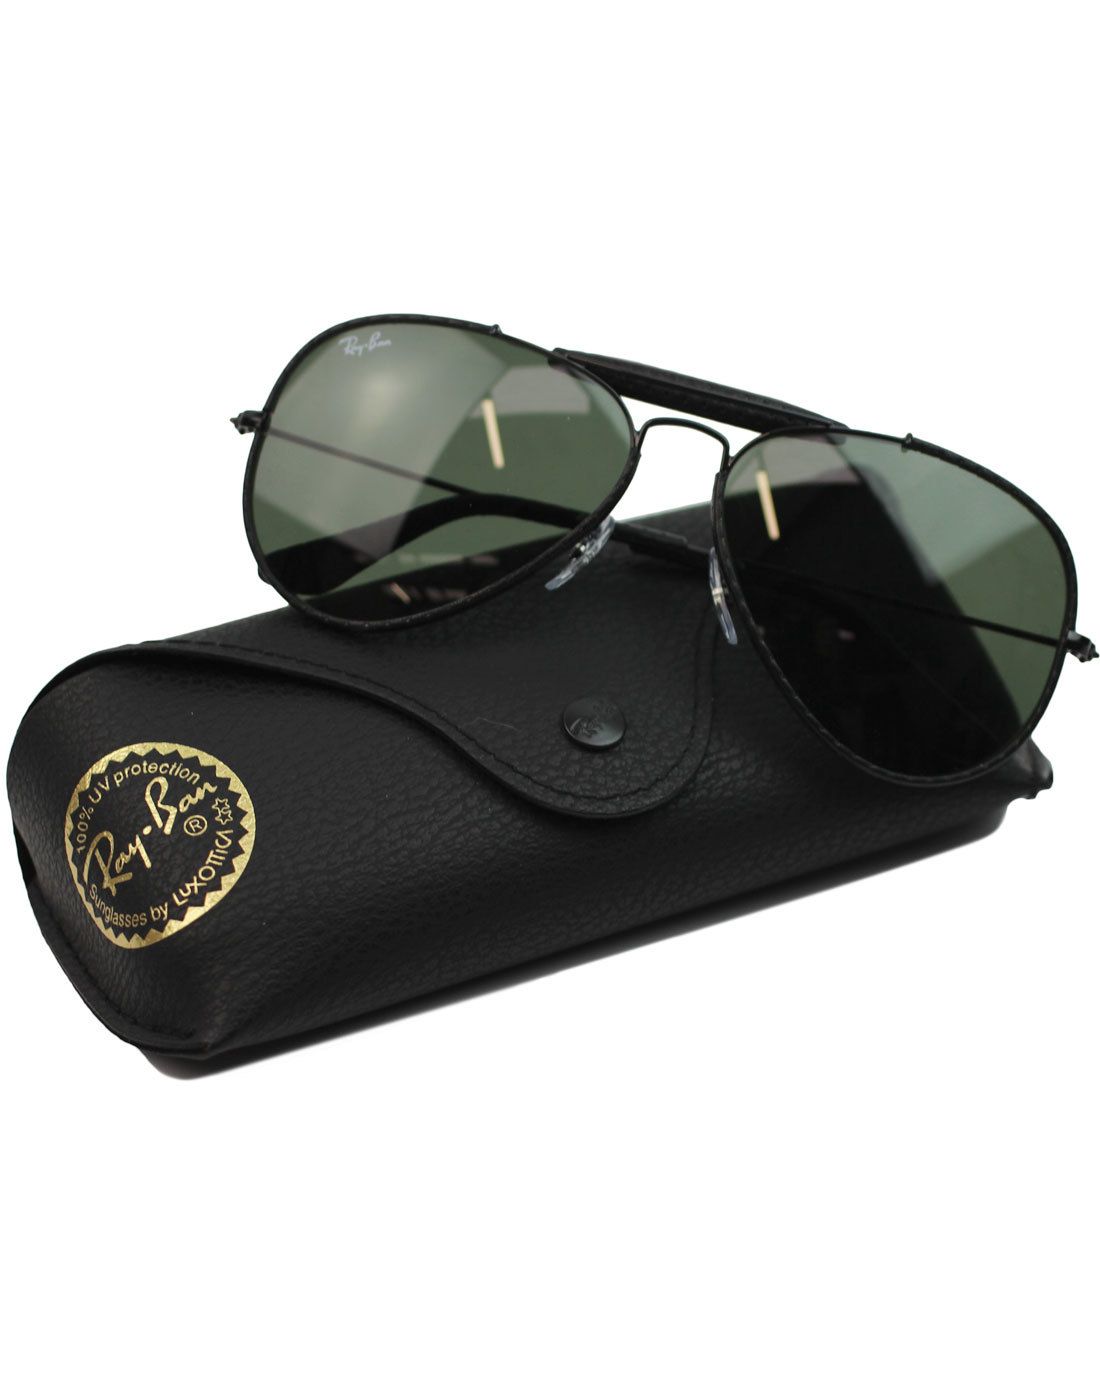 3021140b7b RAY-BAN Outdoorsman Craft Retro 70s Leather Sunglasses in Black